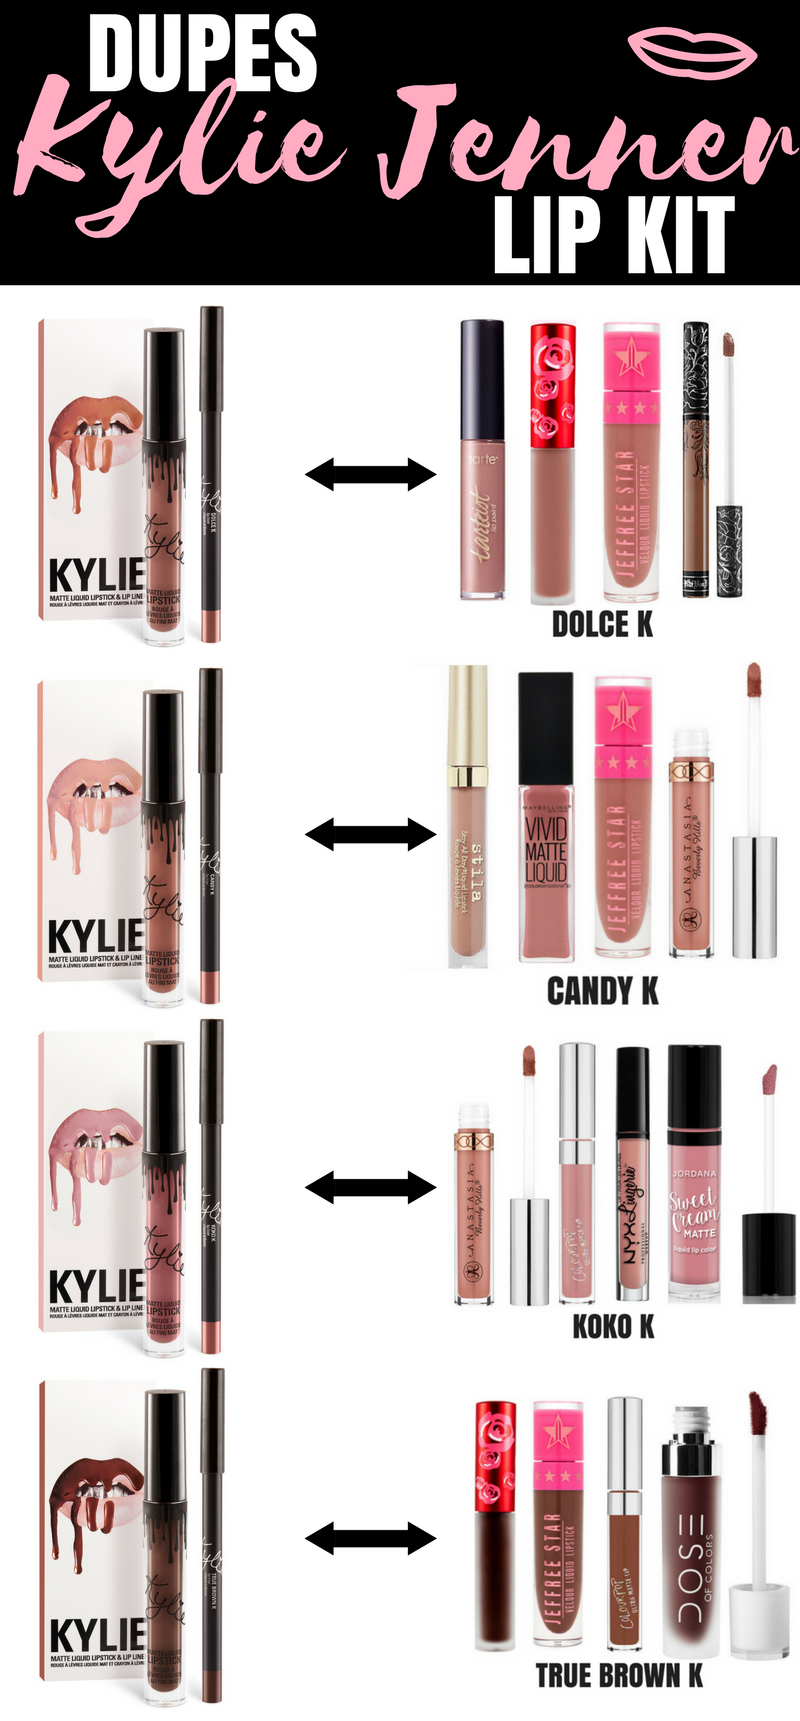 Kylie Jenner Lip Kit Dupes by Alejandra Avila